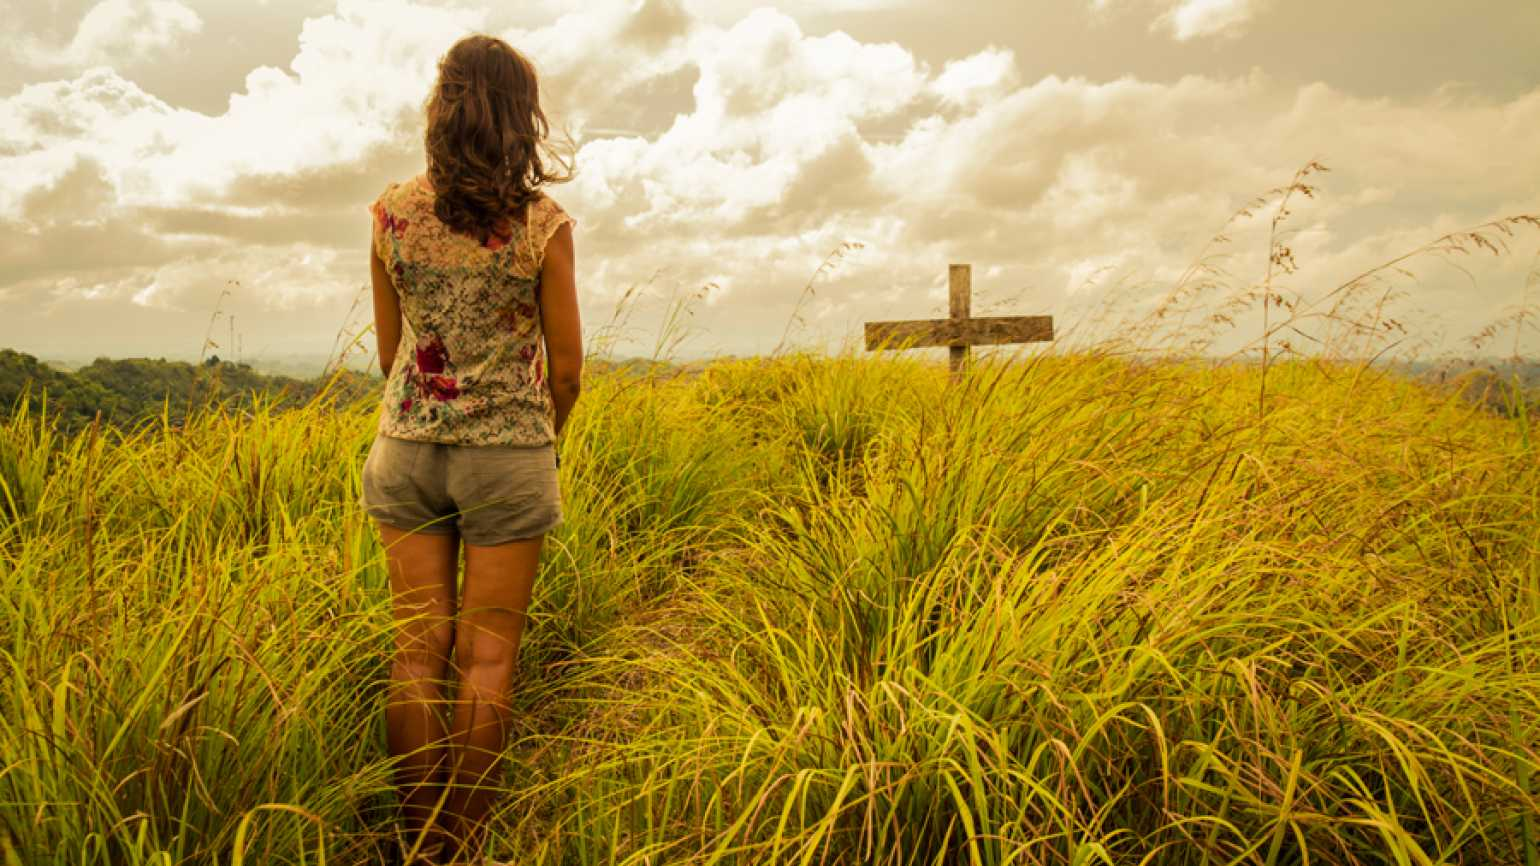 A woman in a field with a cross in front of her